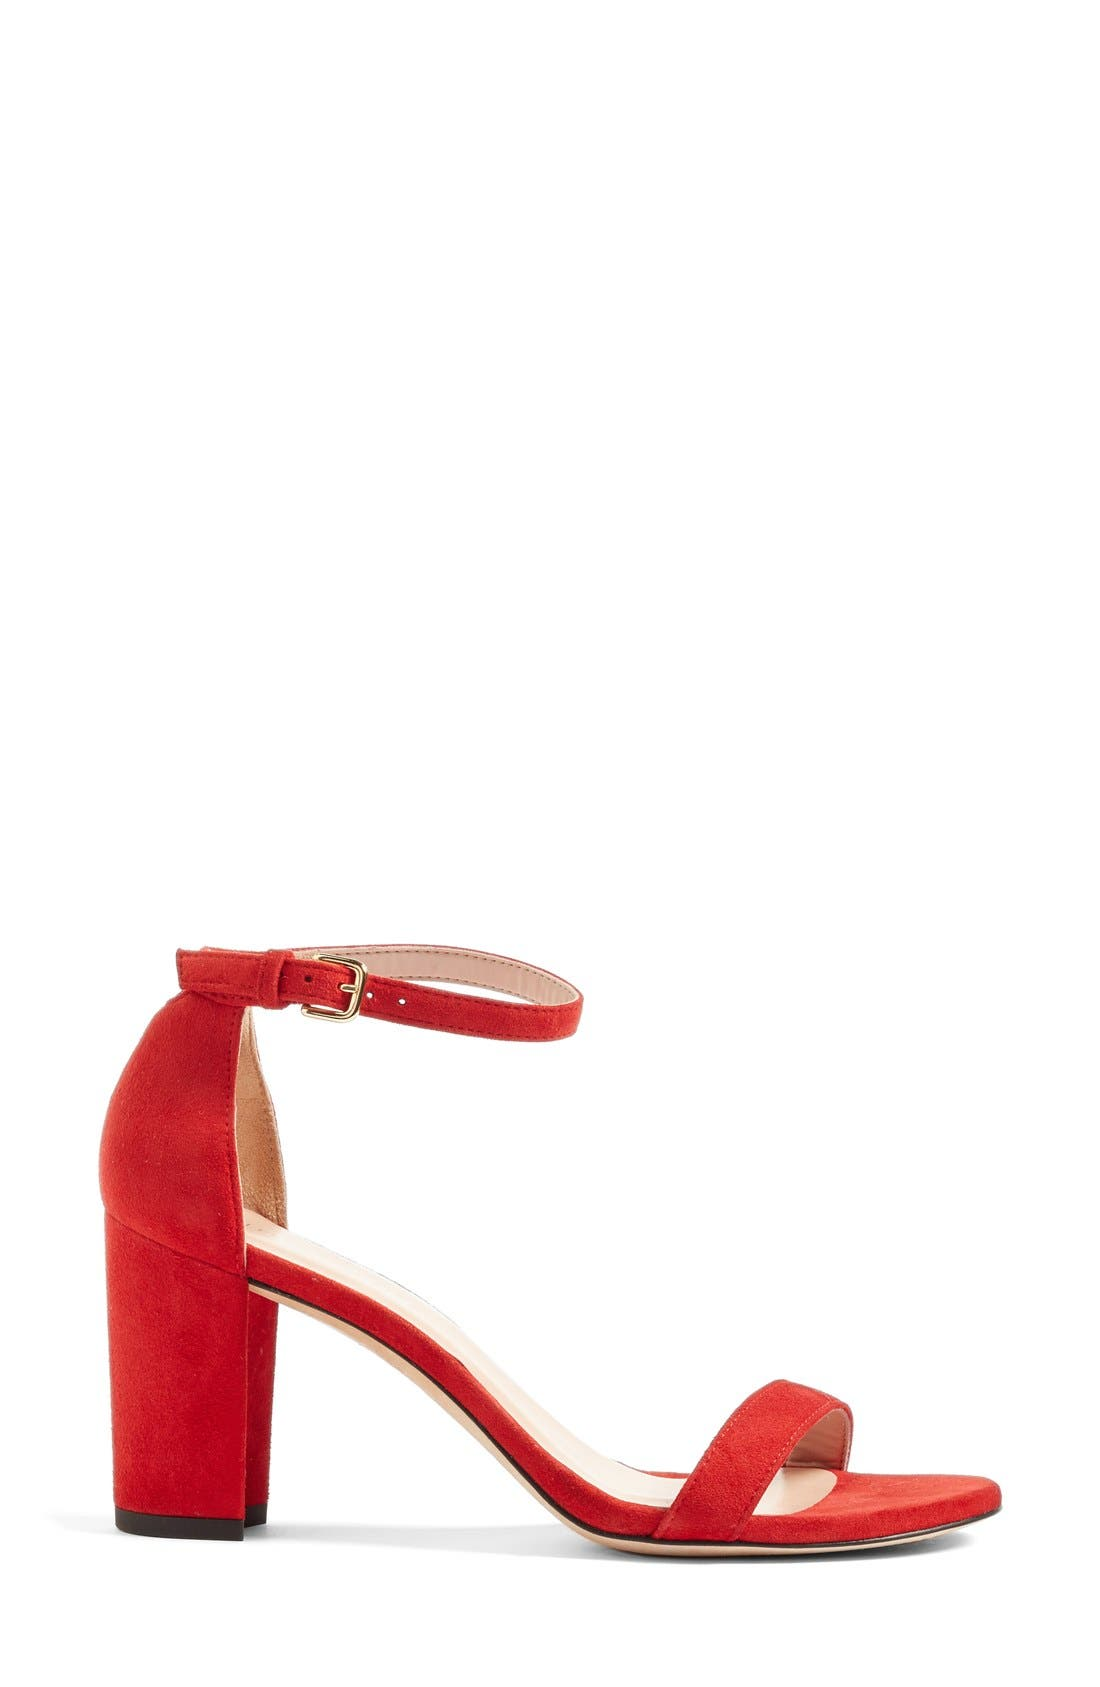 NearlyNude Ankle Strap Sandal,                             Alternate thumbnail 204, color,